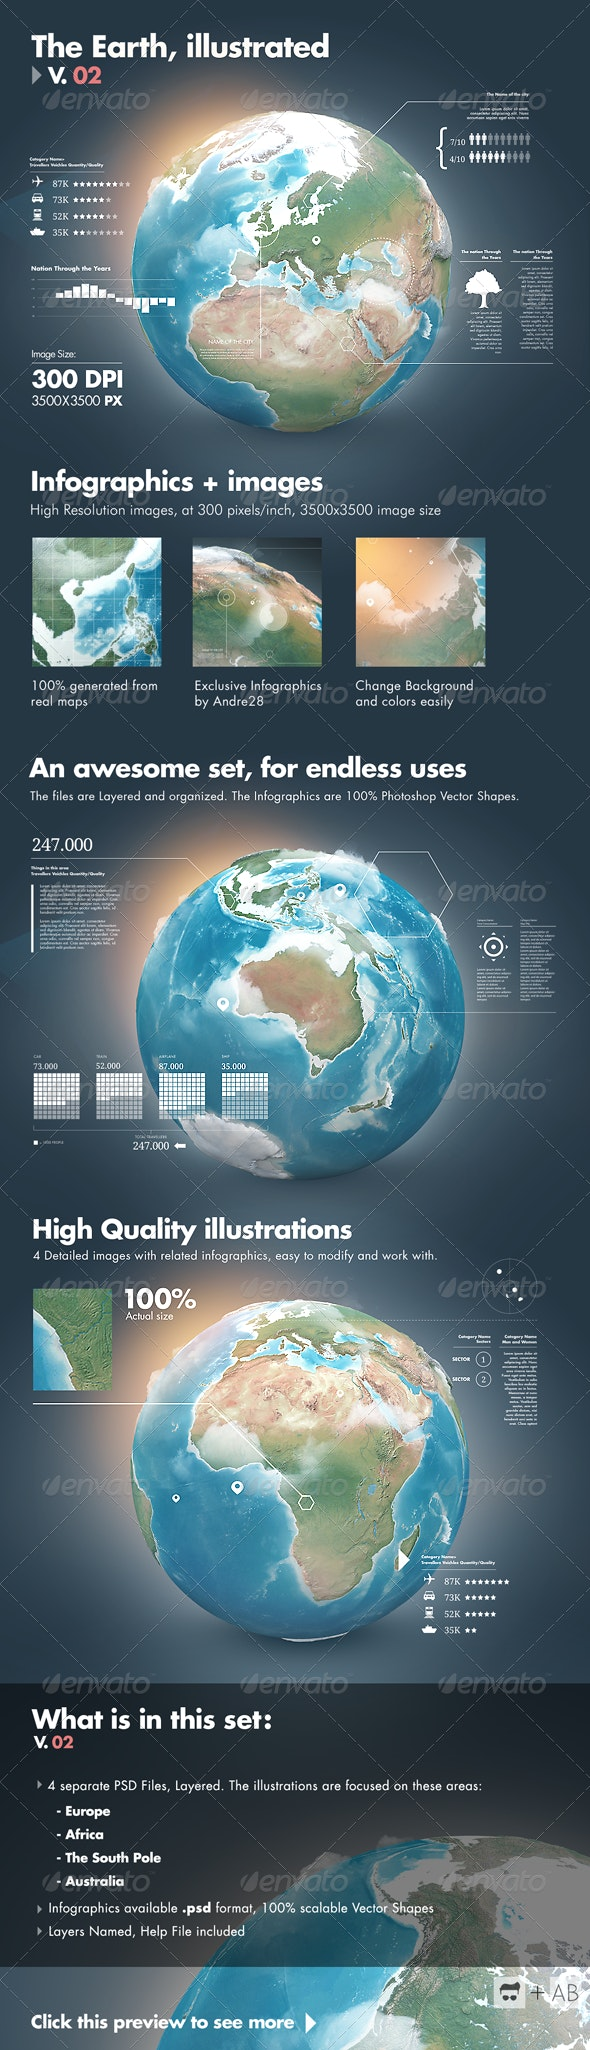 Earth Illustrations and Infographics - V2 - Infographics